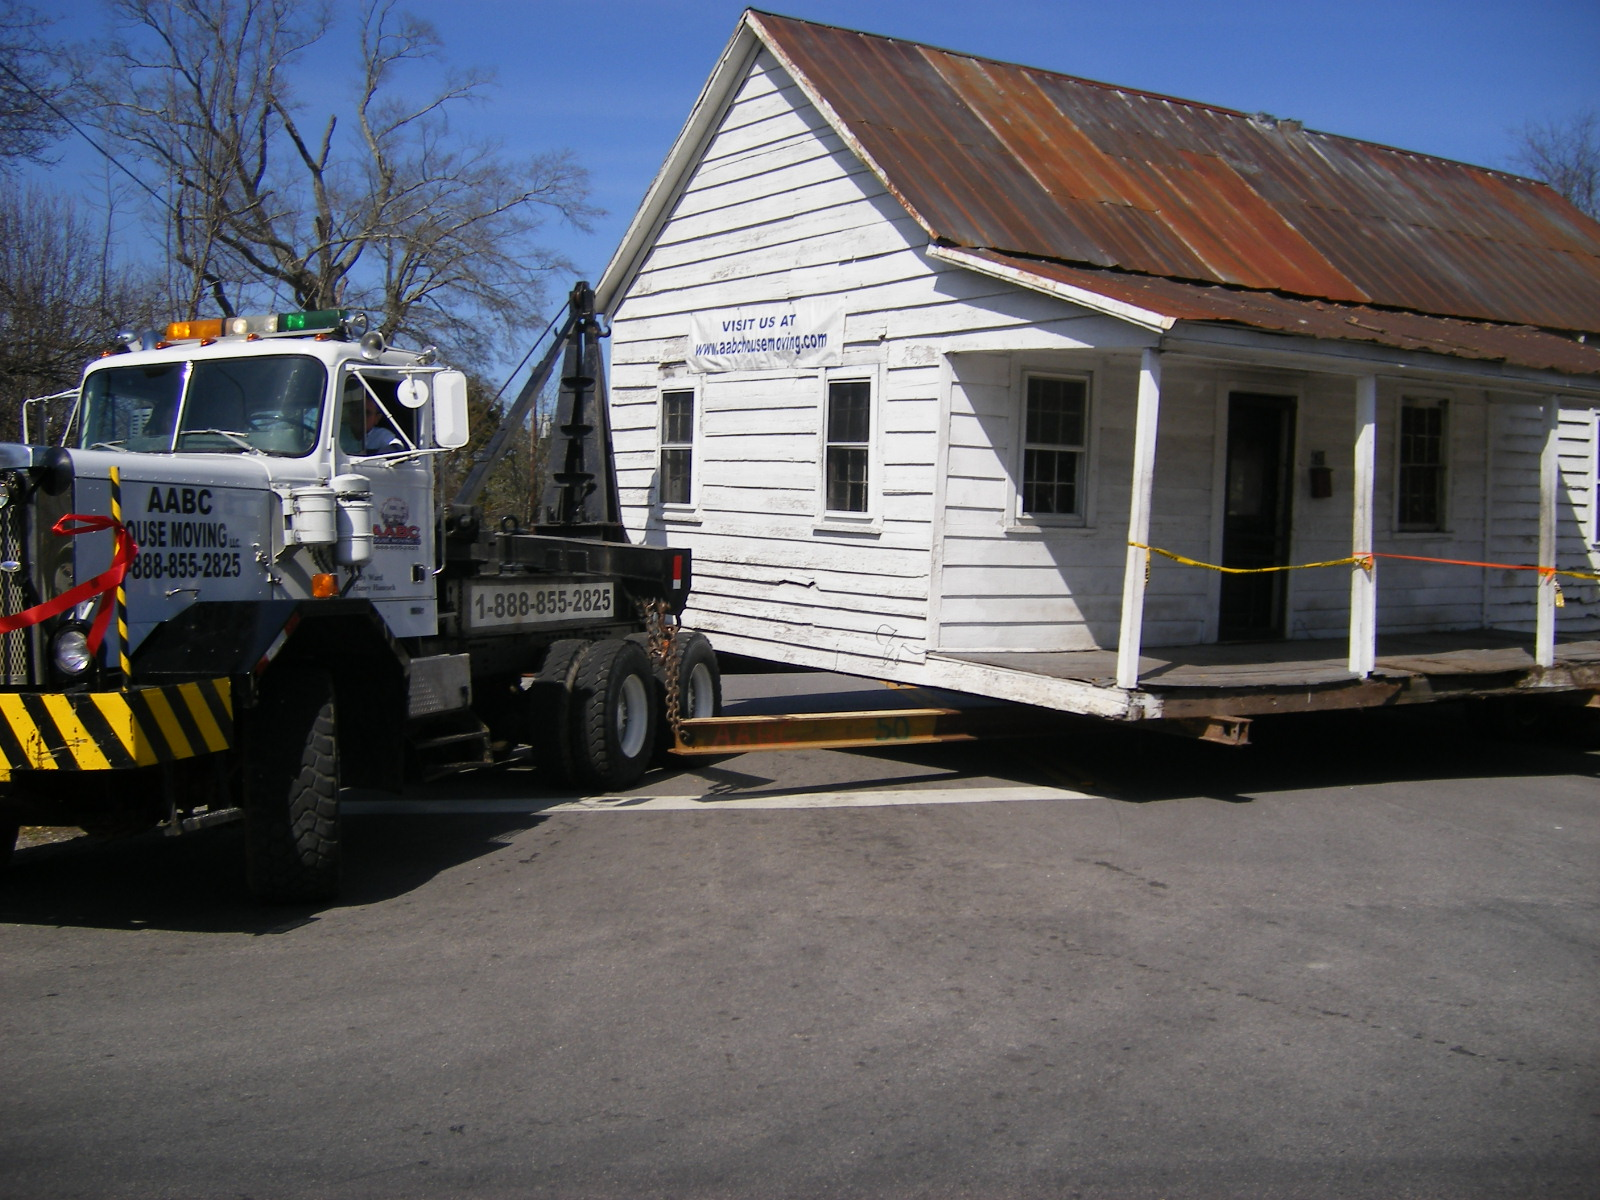 The house was transported to its new location.